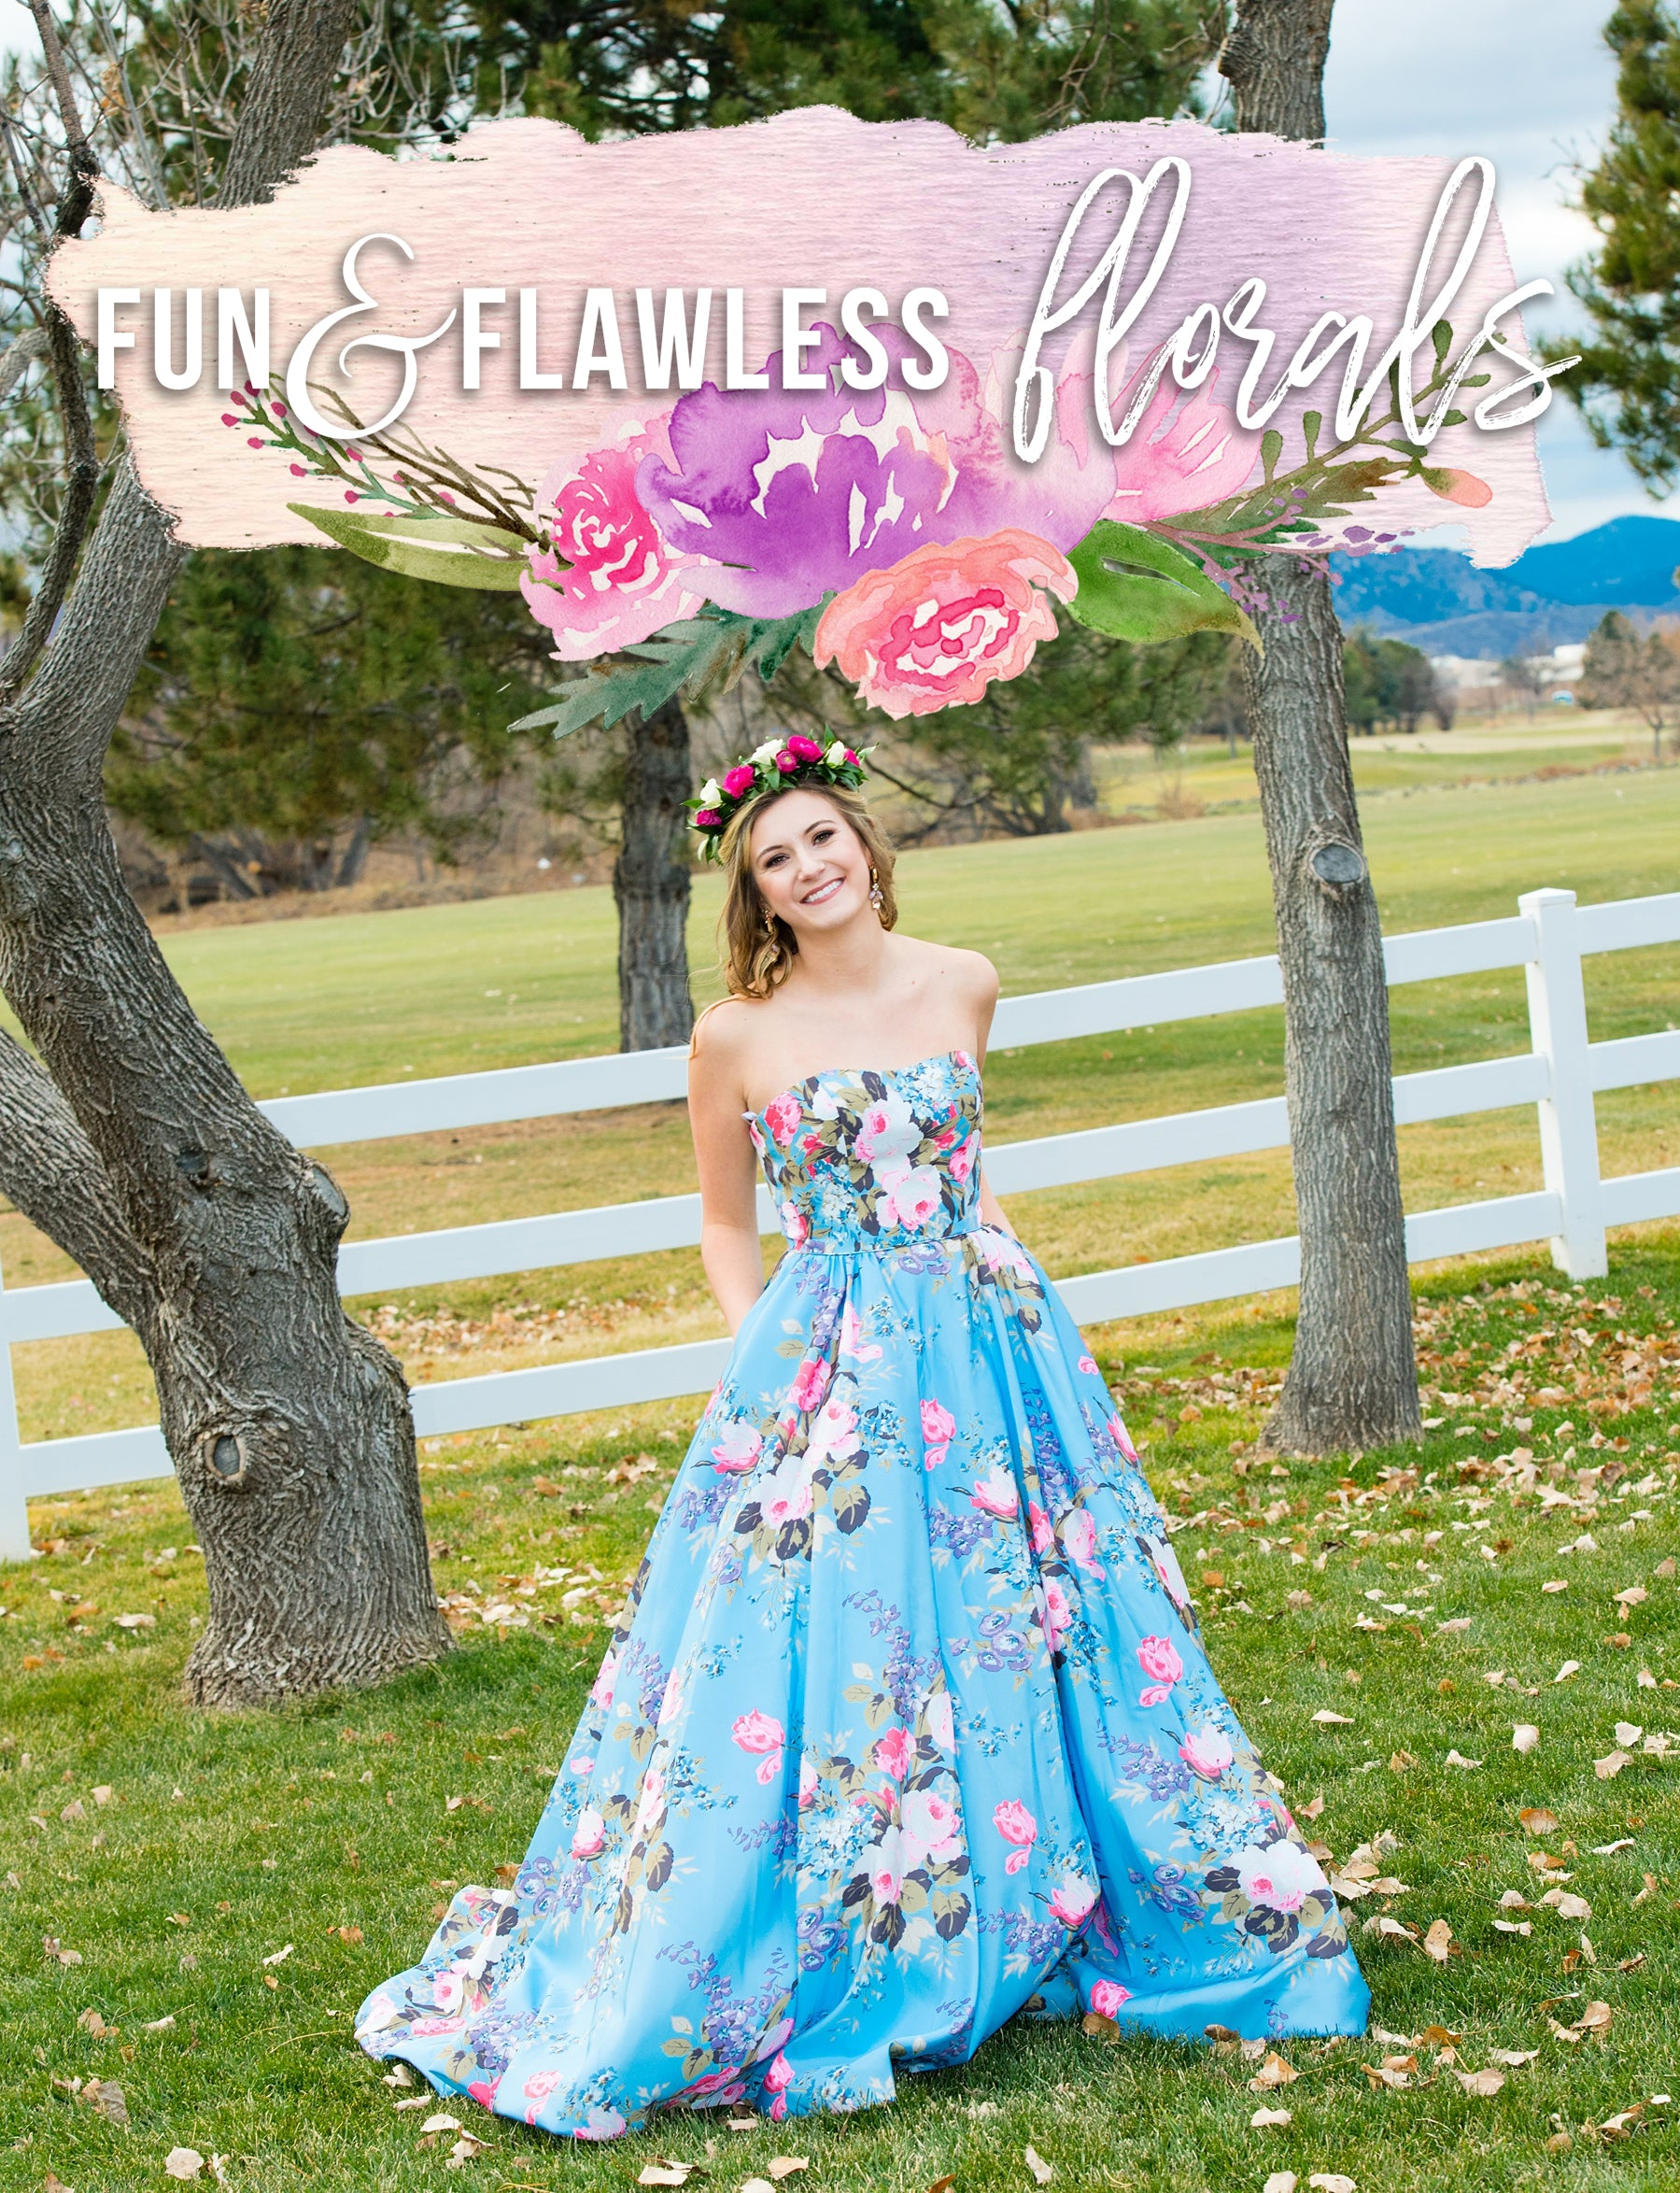 Fun and Flawless Florals